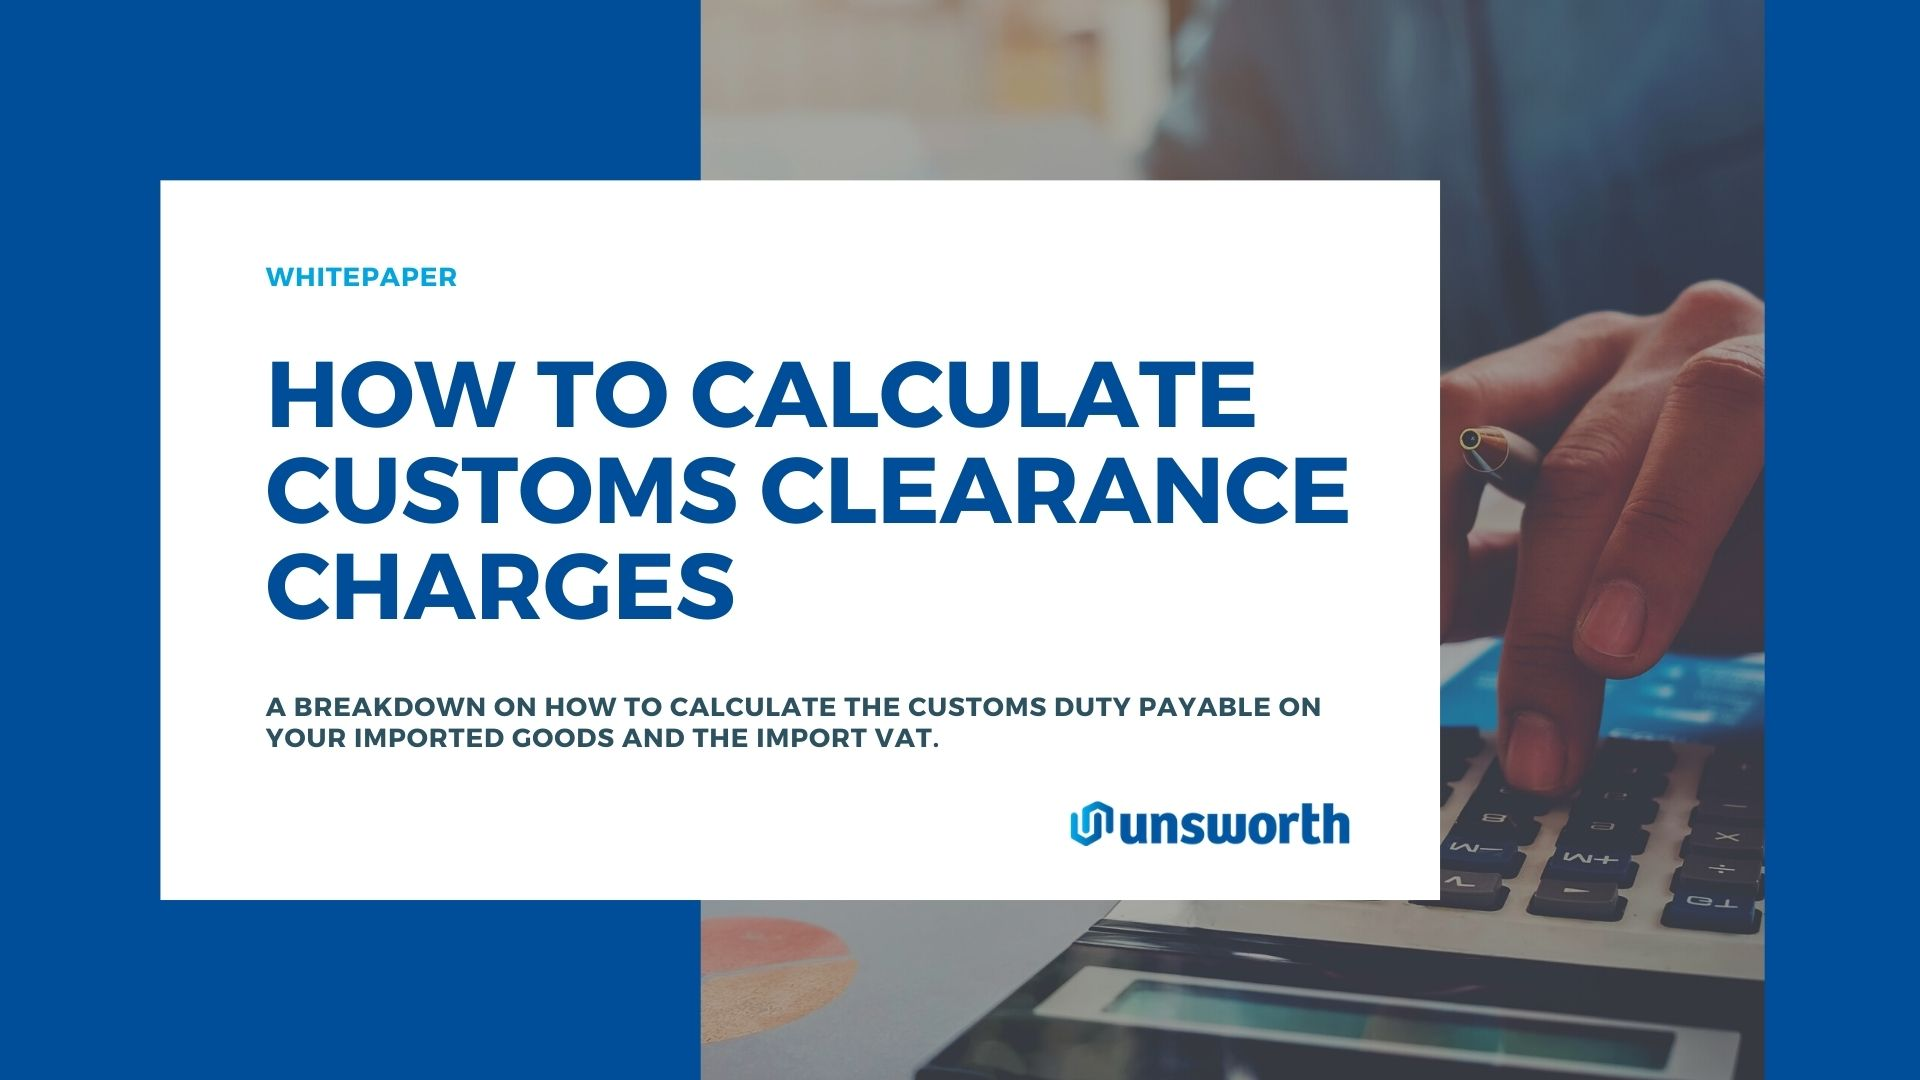 Whitepaper download how to calculate customs clearance charges